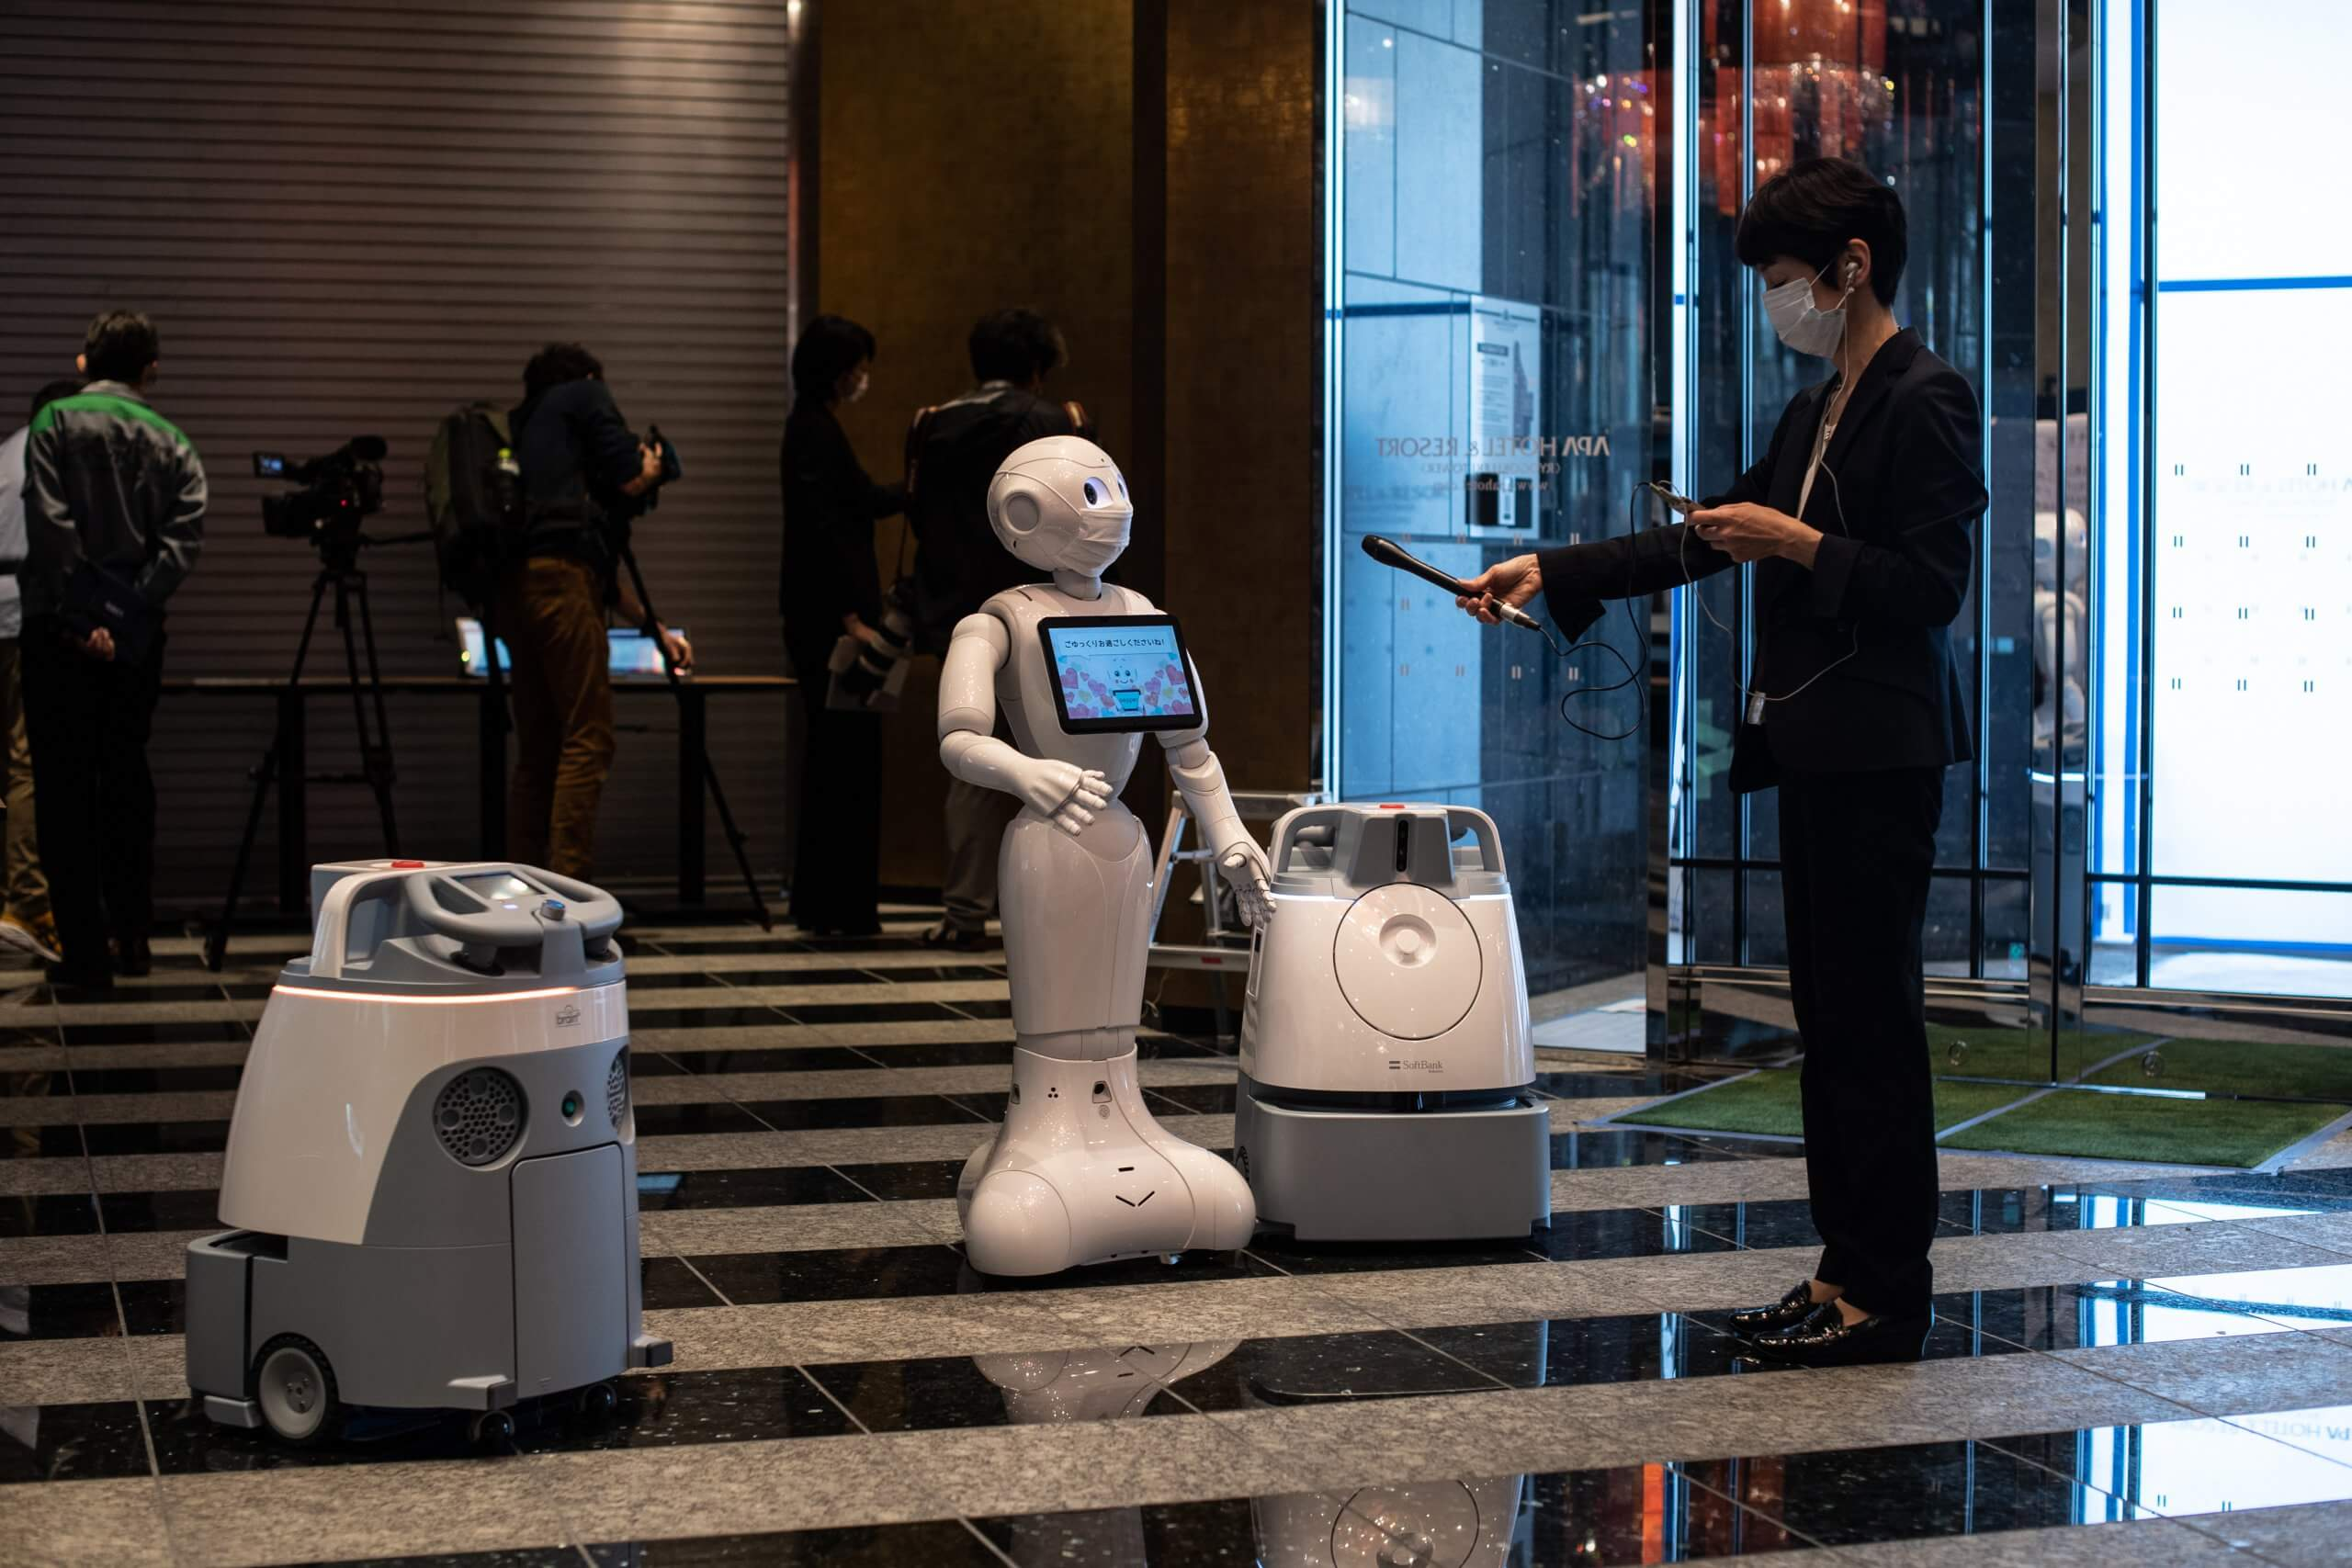 Pepper with two other cleaning robots in the lobby of a hotel